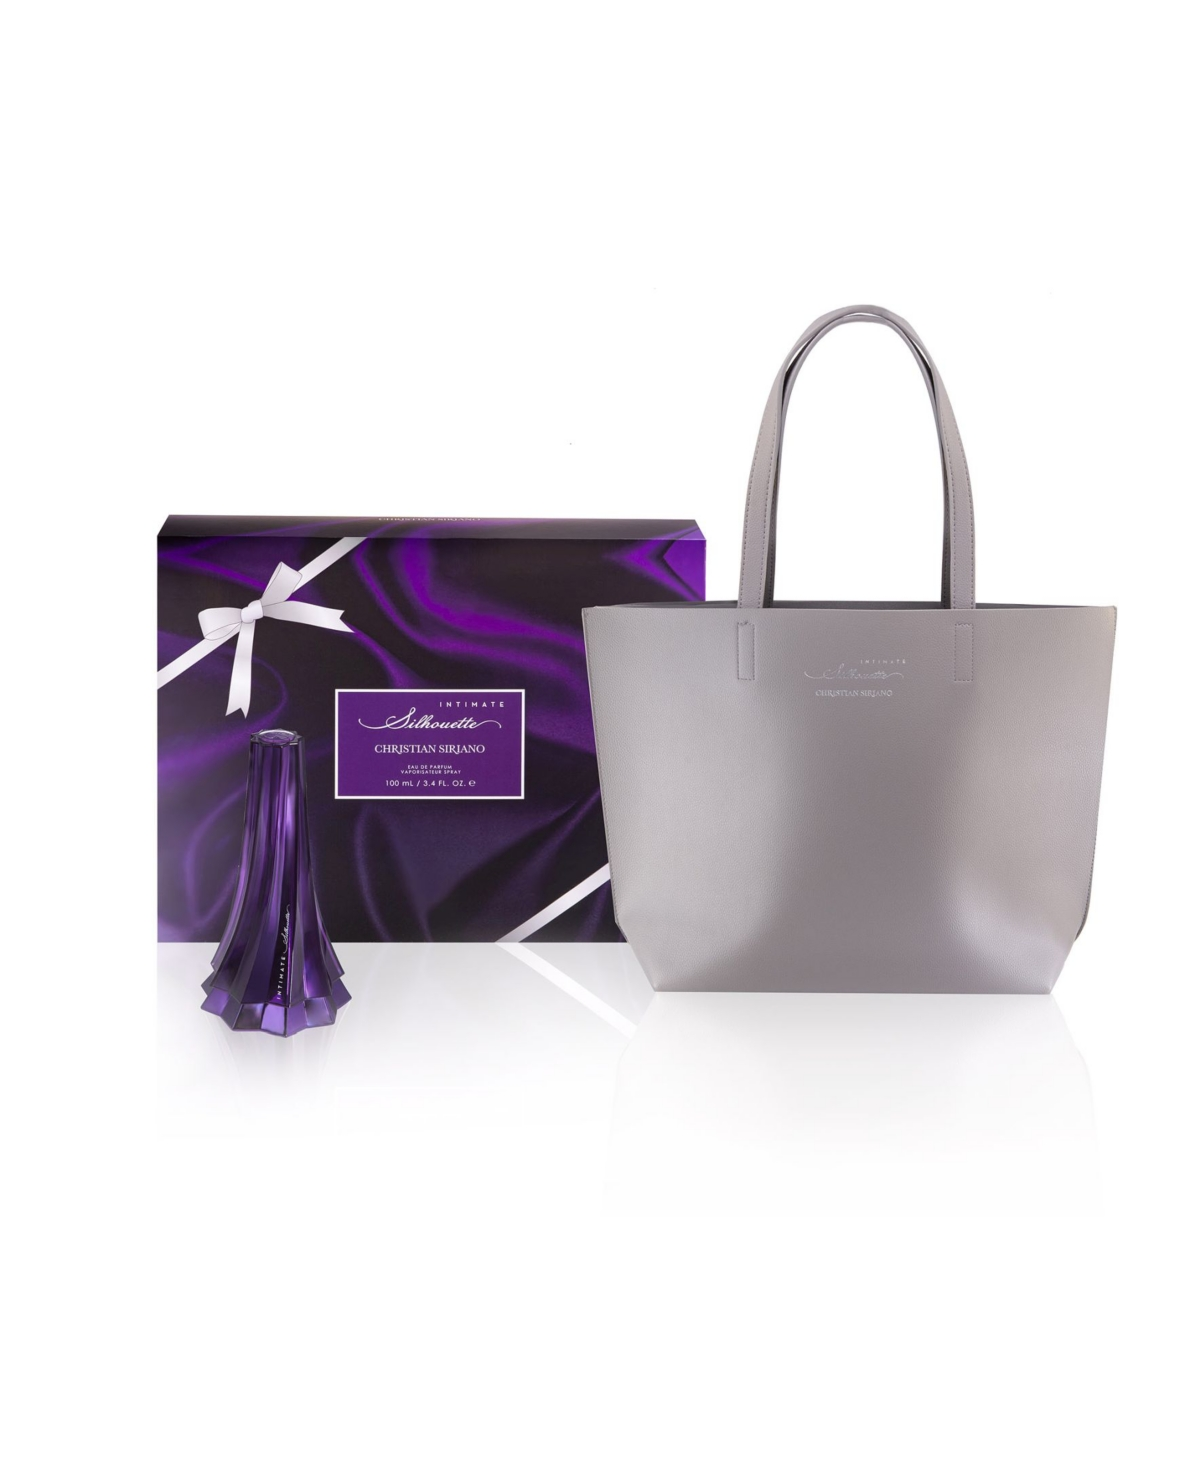 Christian Siriano Intimate Silhouette Gift Set for Women, 2 Pieces